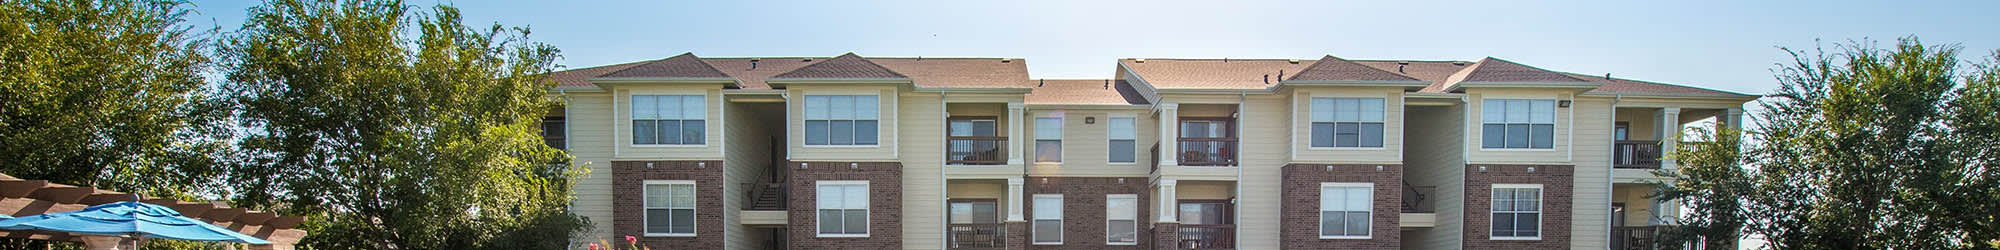 Contact Avana 3131 Apartments for information about our apartments in Oklahoma City